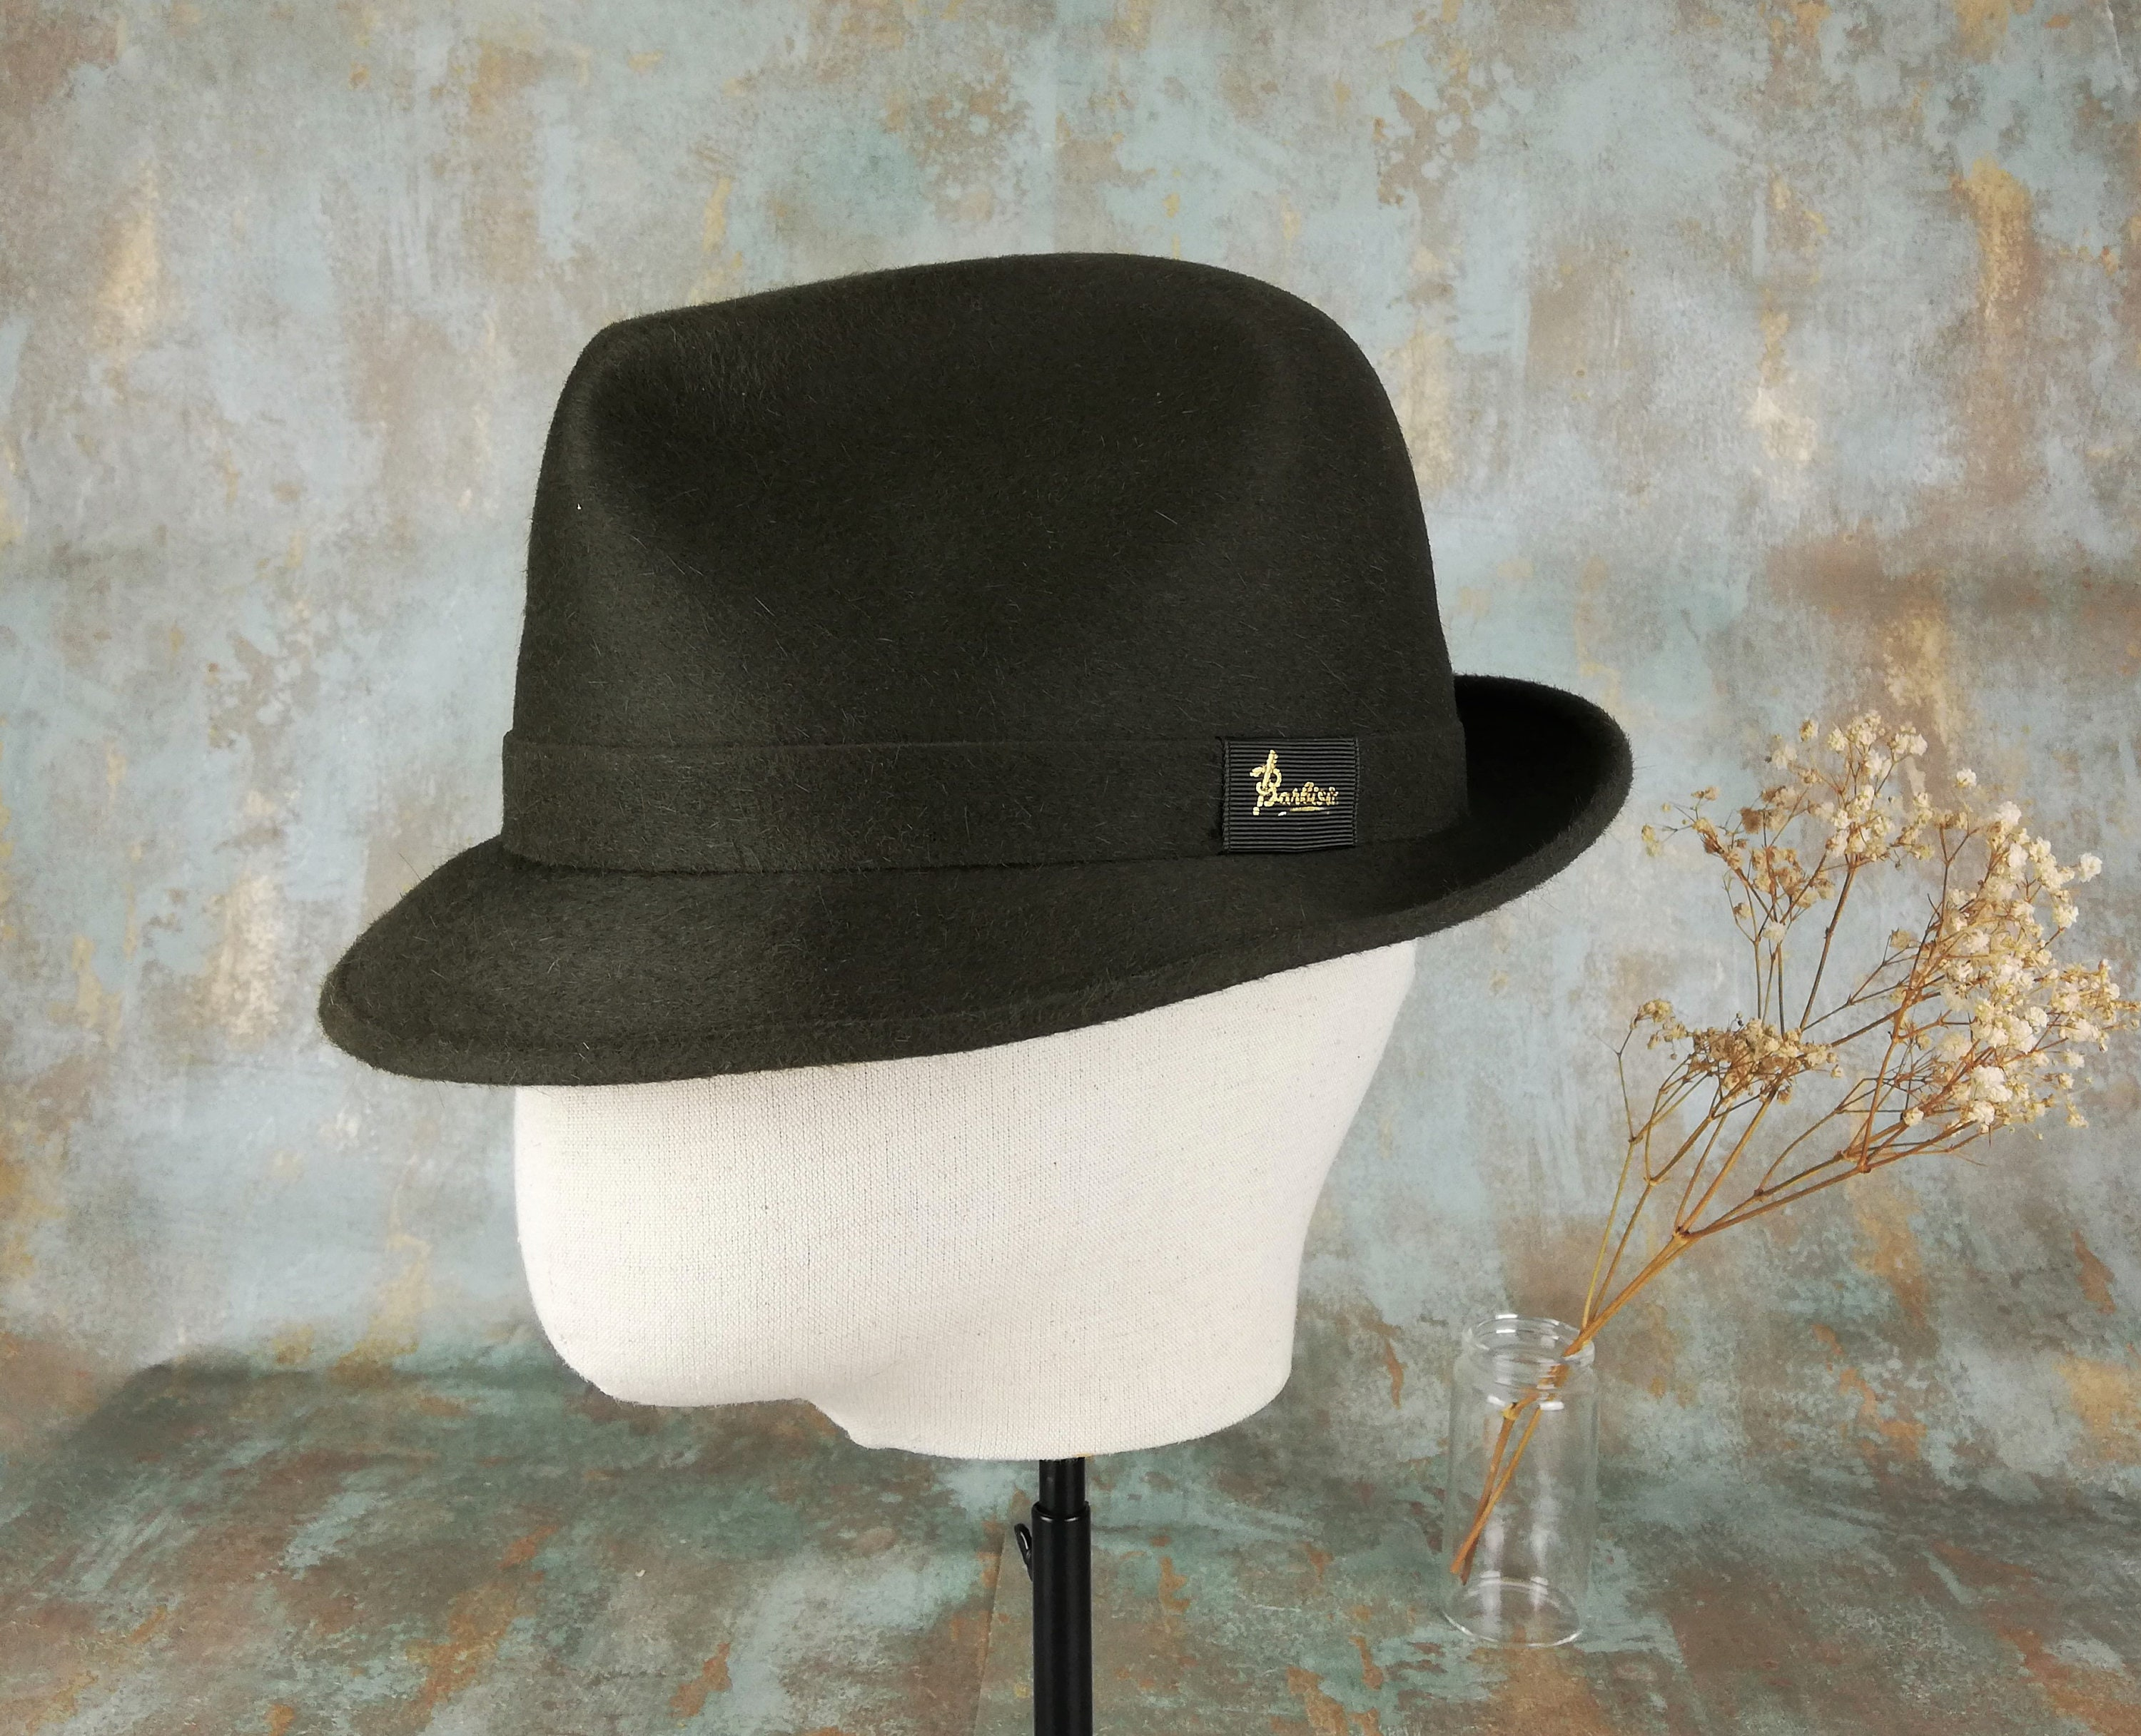 41abaca914d49 Italian Hat. Waterproof hat. Dark green. Barbisio trilby.